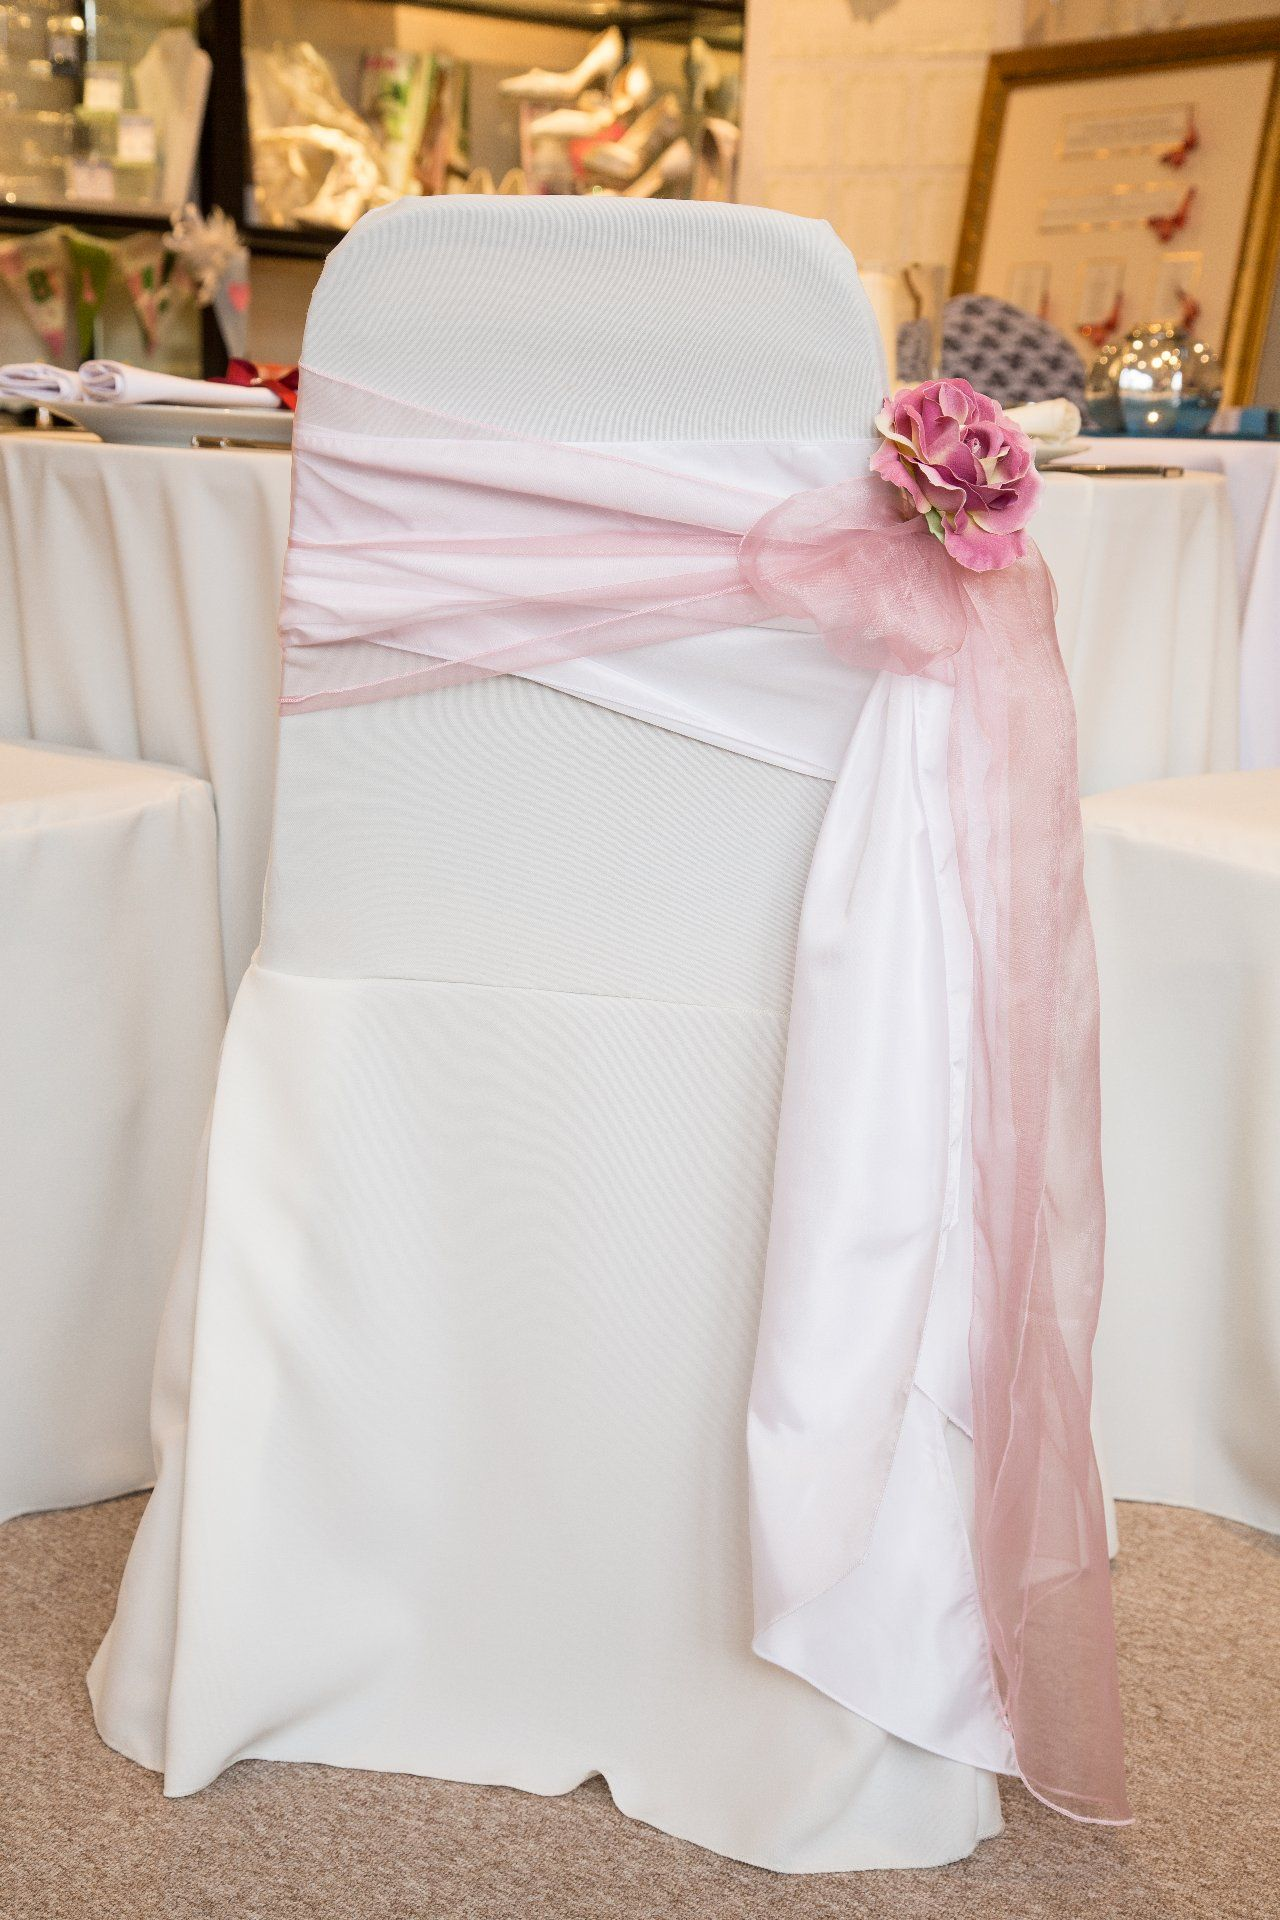 wedding chair covers in surrey folding and table set for toddler full event dressing design service http www